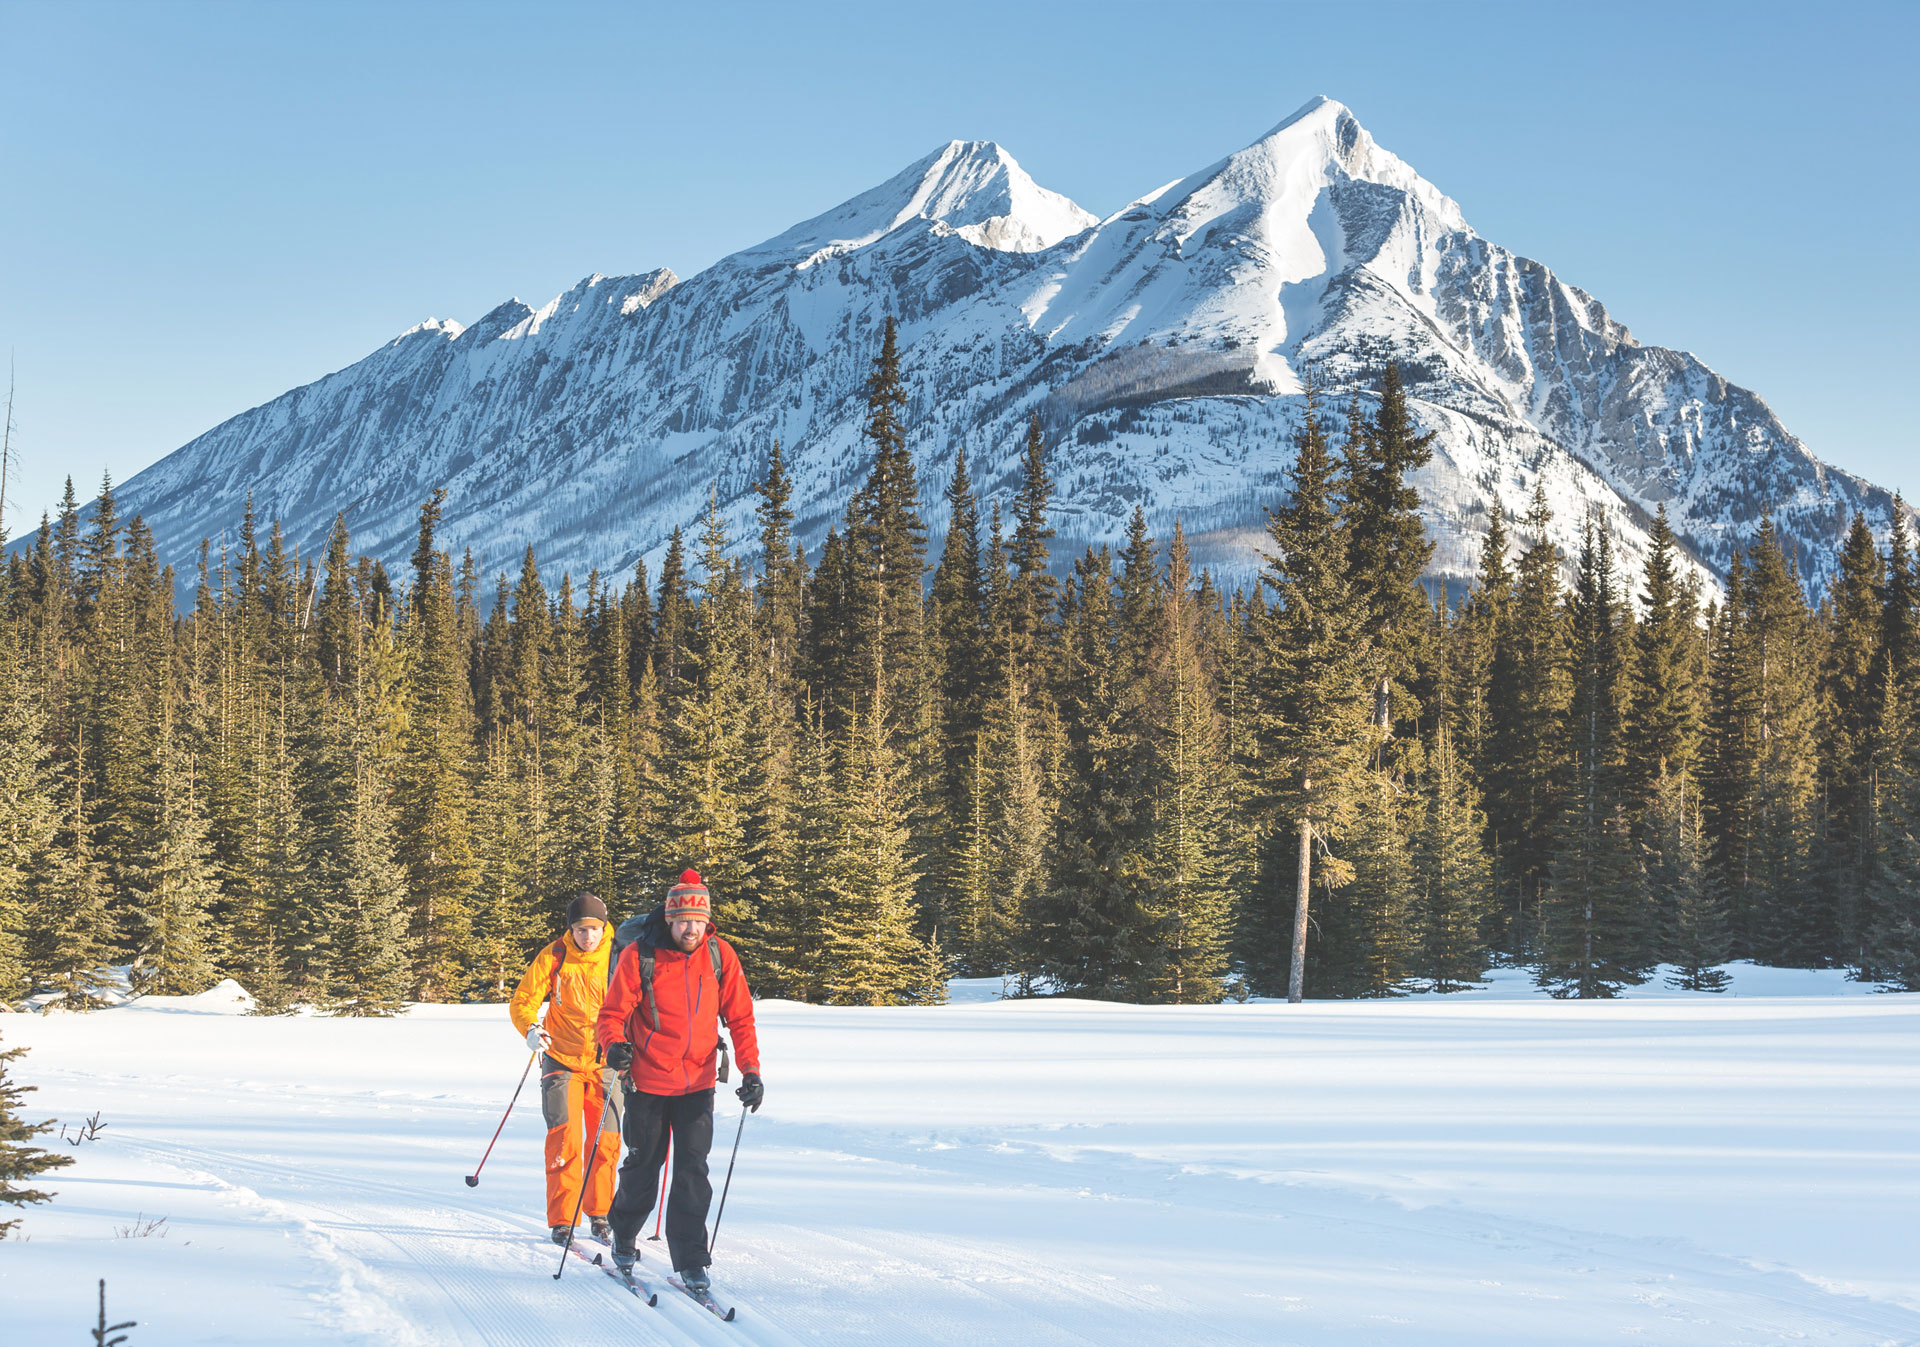 Groomed trails at the Canmore Nordic Centre (Photo credit: Matthew Clark).